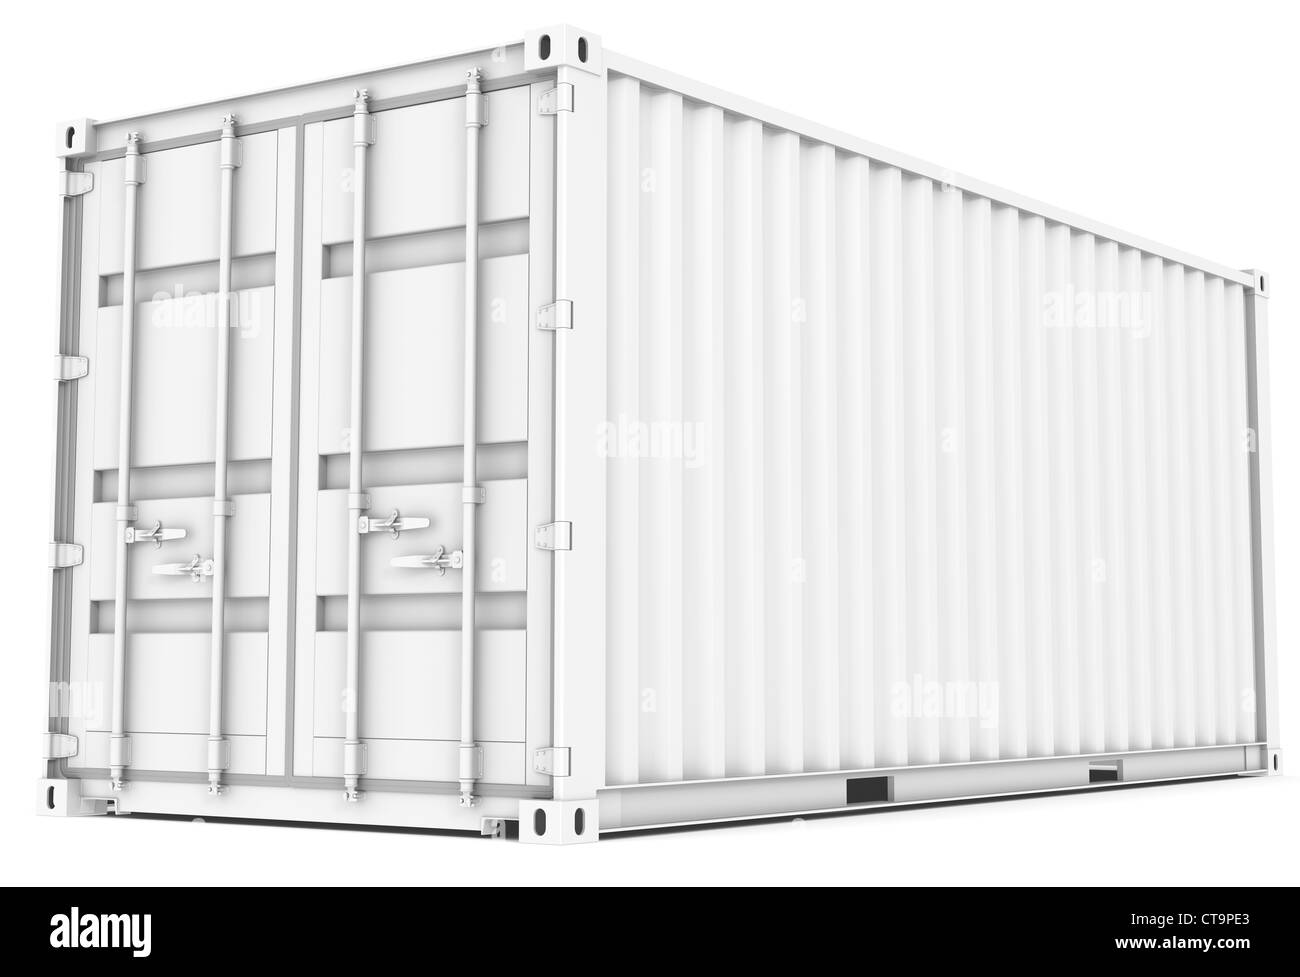 All white Cargo Container. Perspective view. - Stock Image